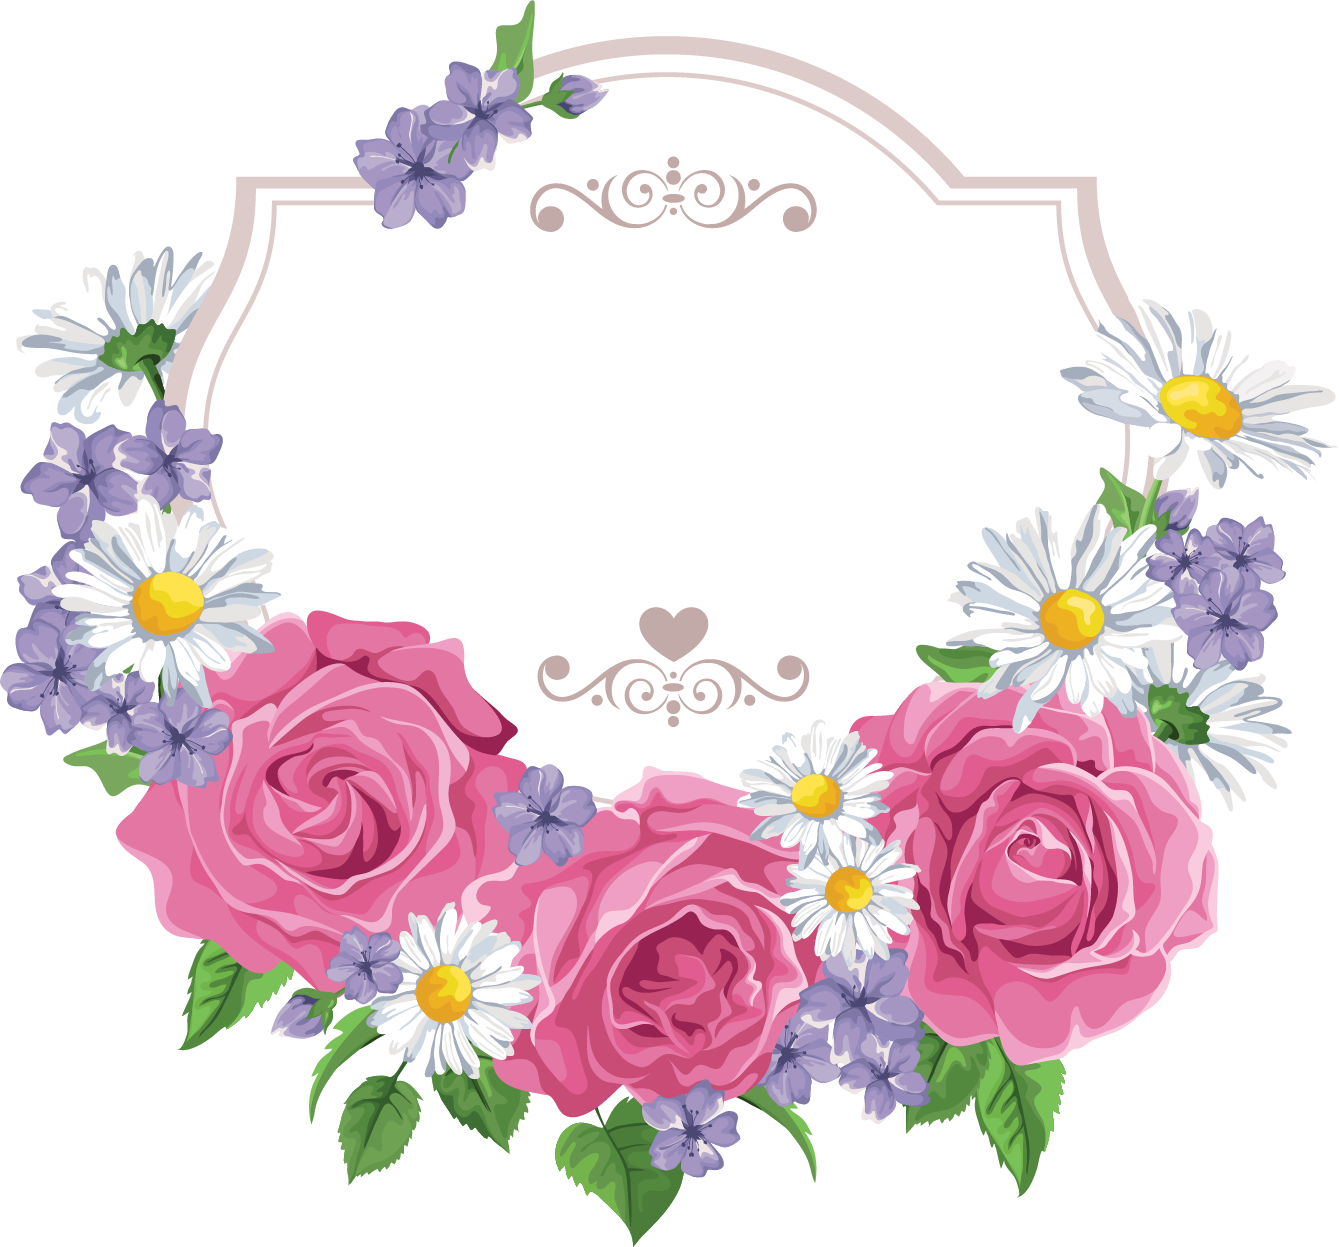 Floral clipart card, Floral card Transparent FREE for ...